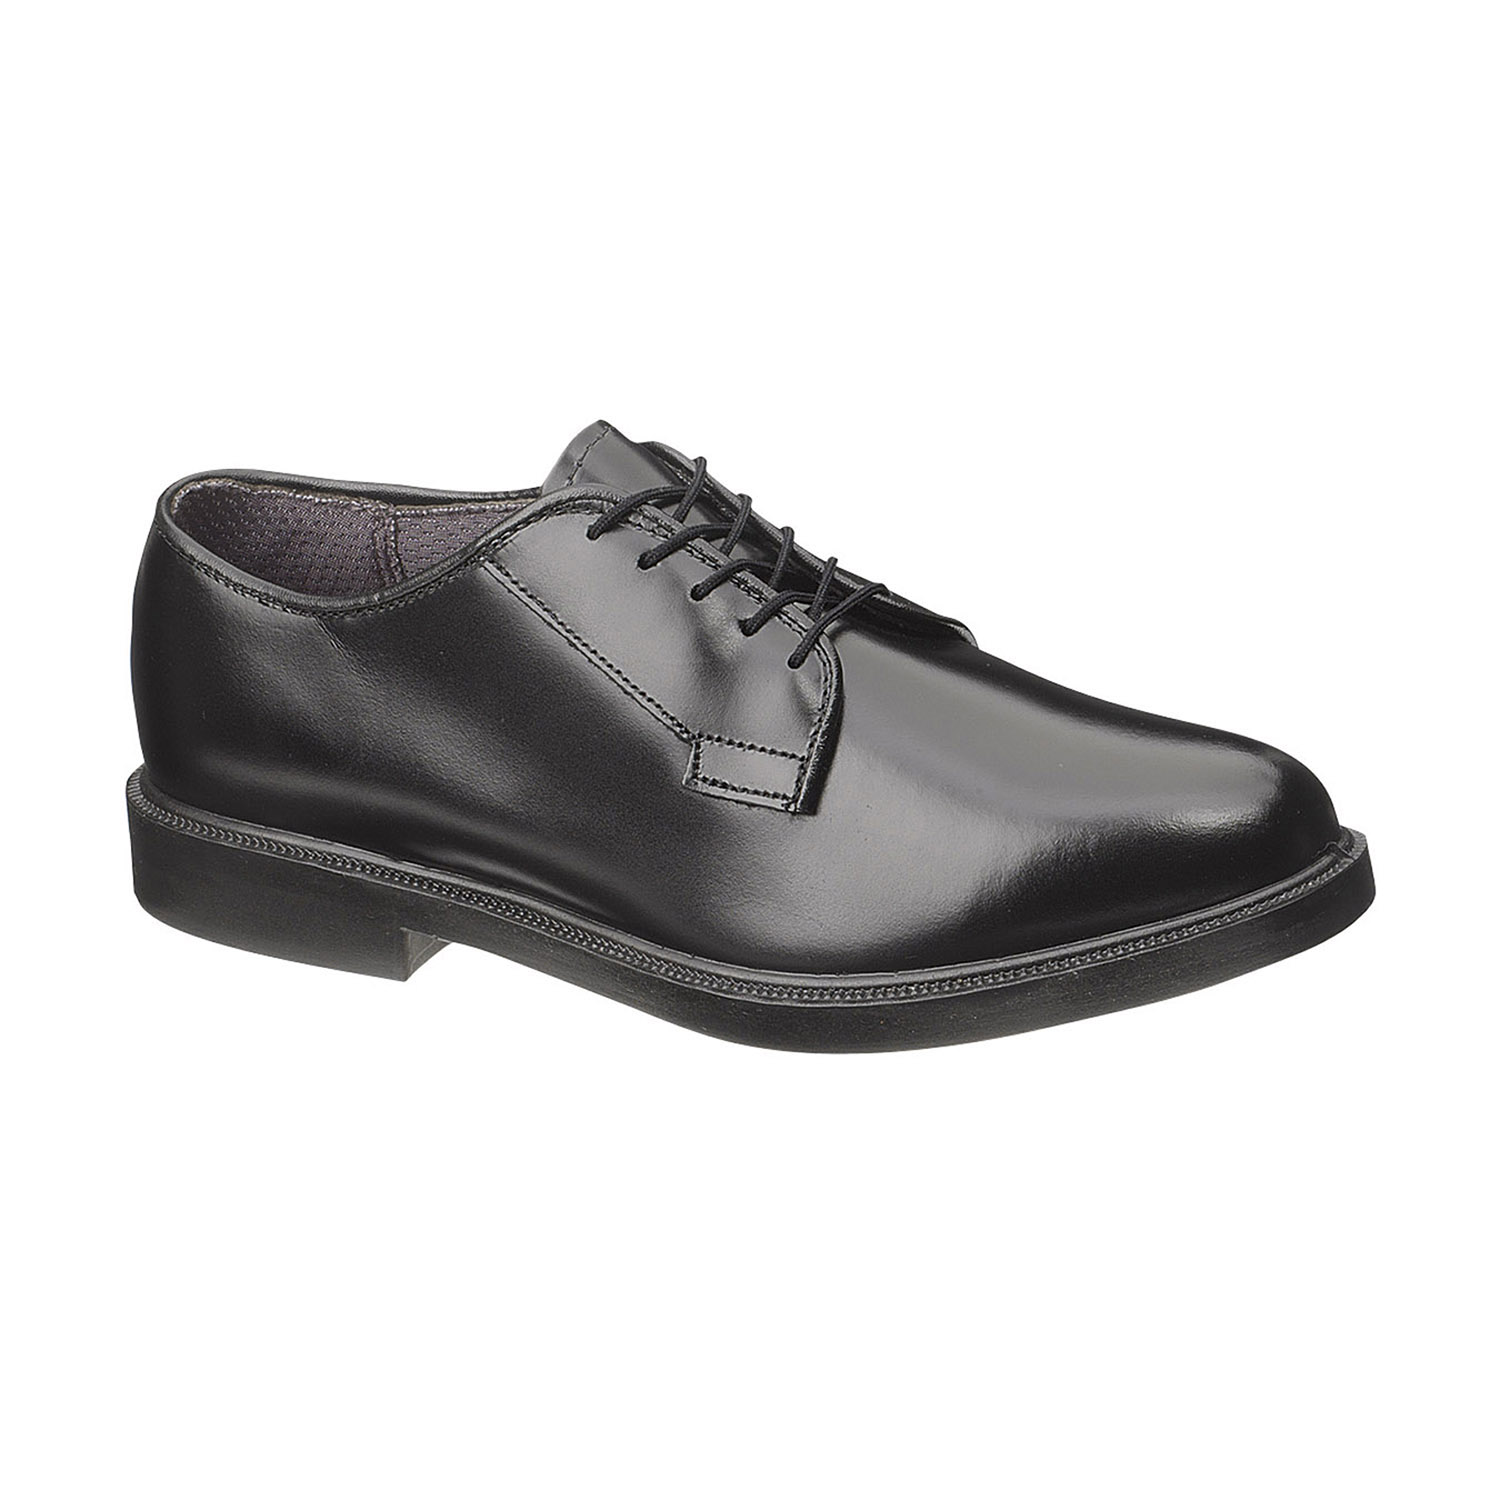 Bates Leather DuraShock Oxford